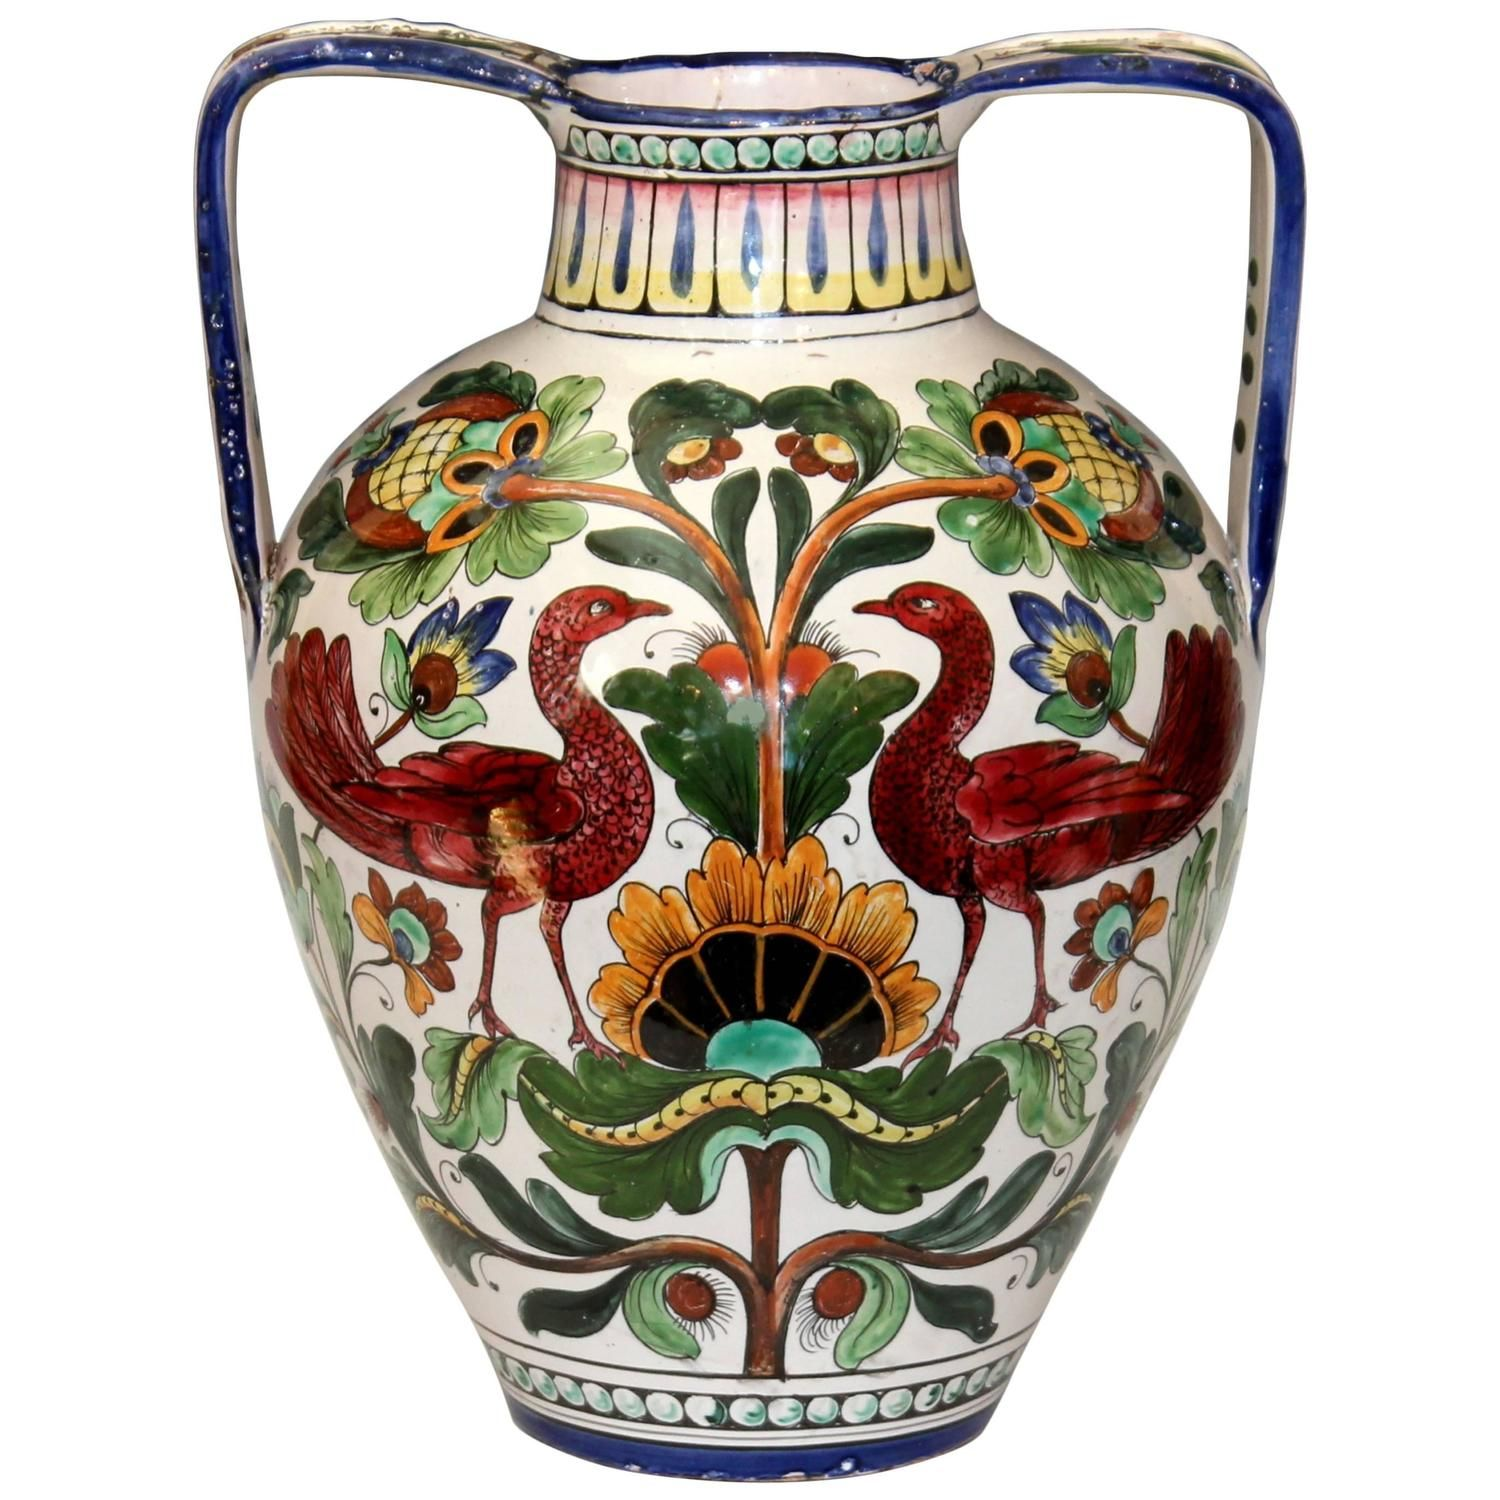 Old antique vases best 2000 antique decor ideas piediluco large old antique italian pottery faience majolica jug reviewsmspy